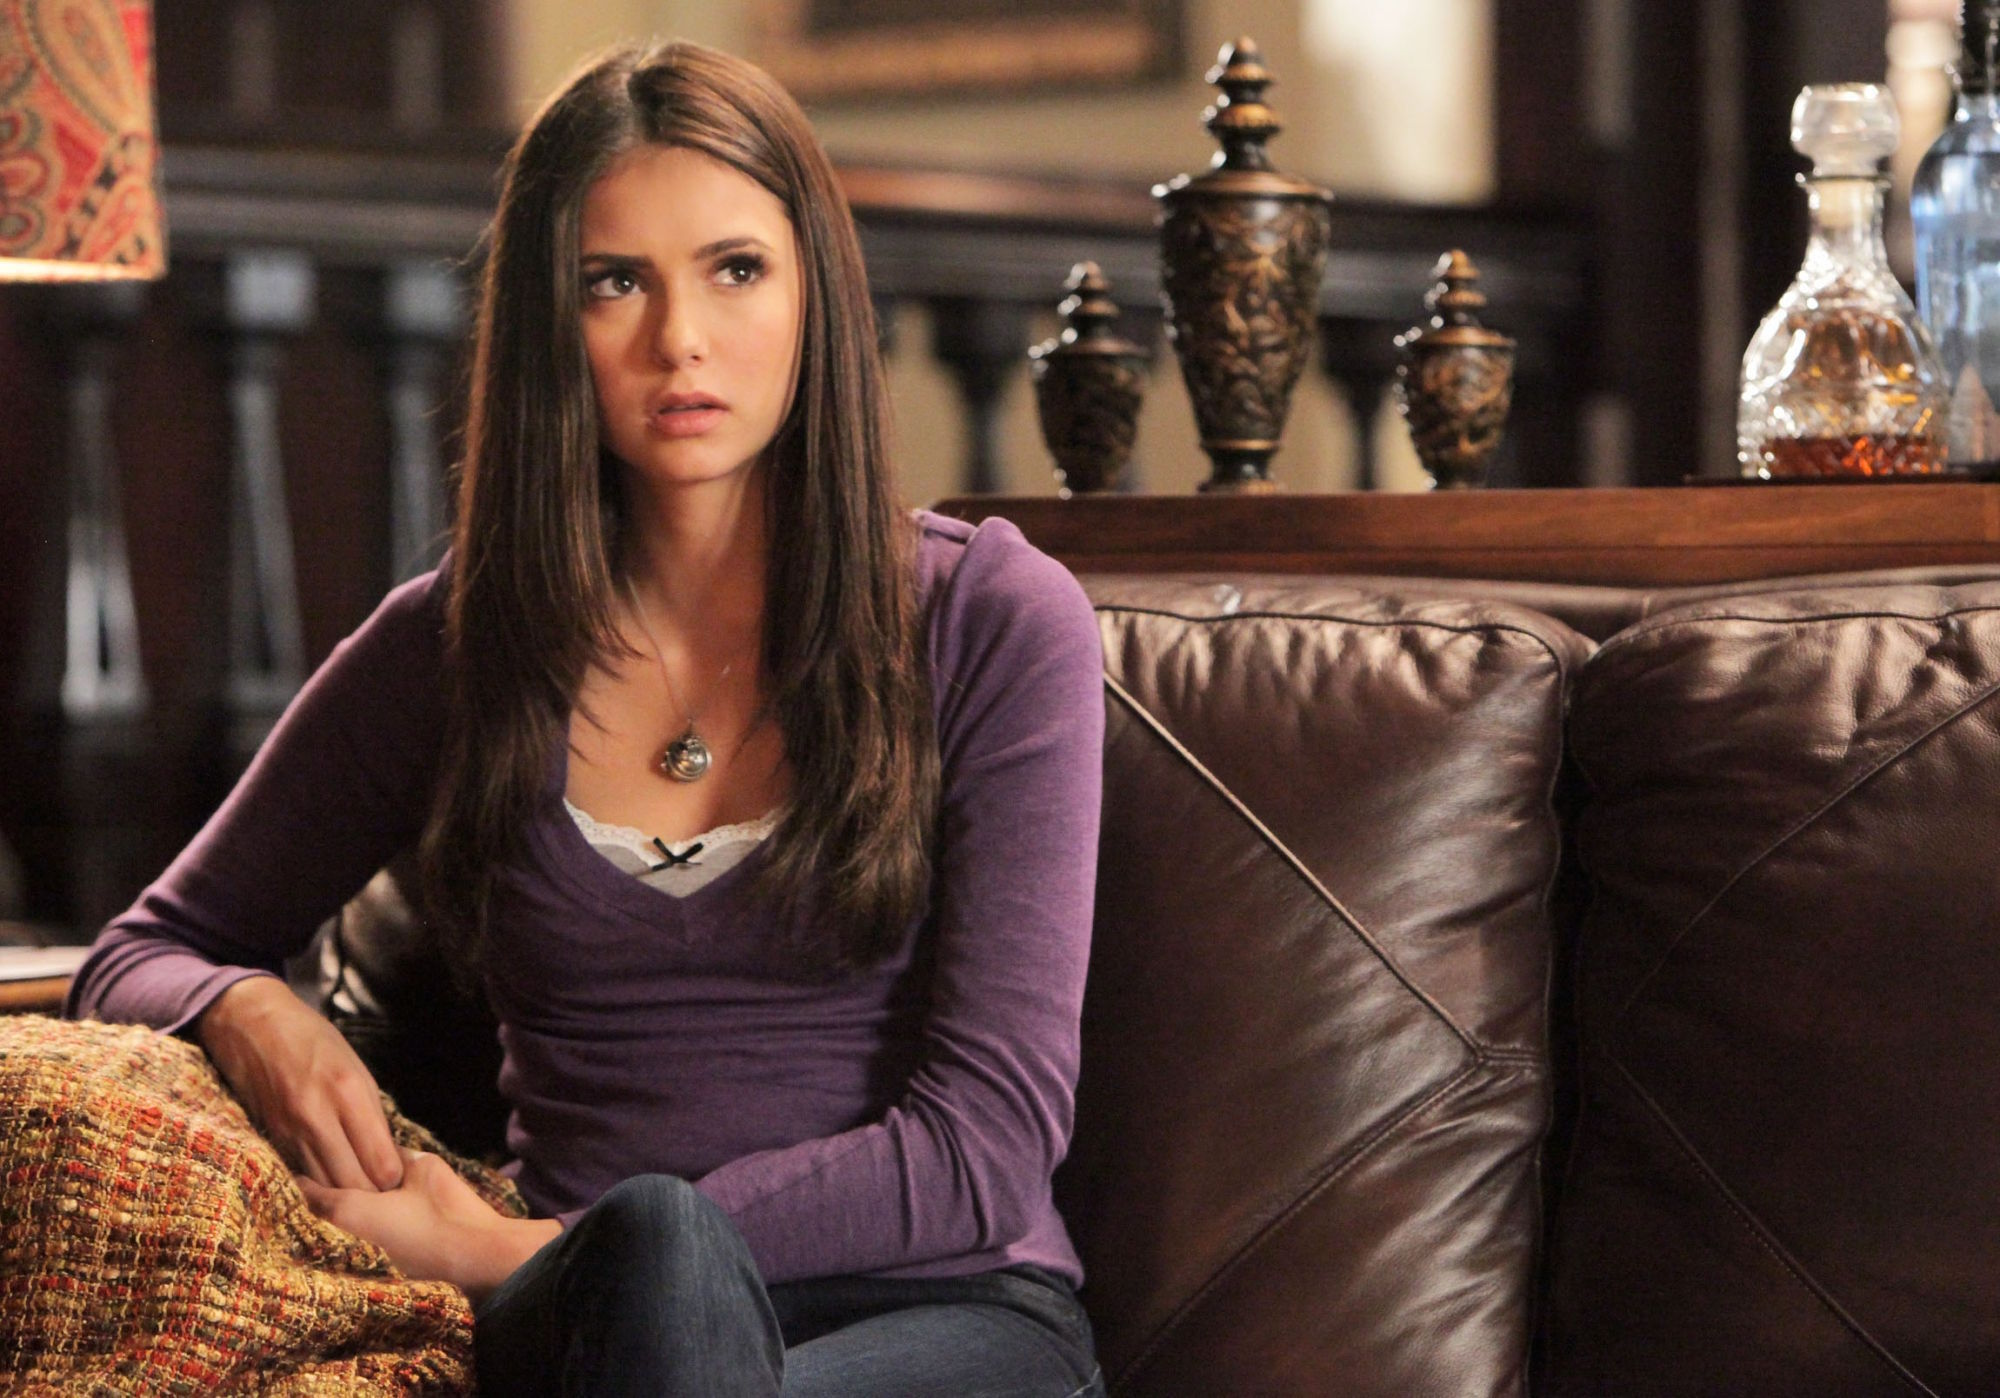 http://images4.fanpop.com/image/photos/16900000/2-10-The-Sacrifice-the-vampire-diaries-16900314-2000-1398.jpg